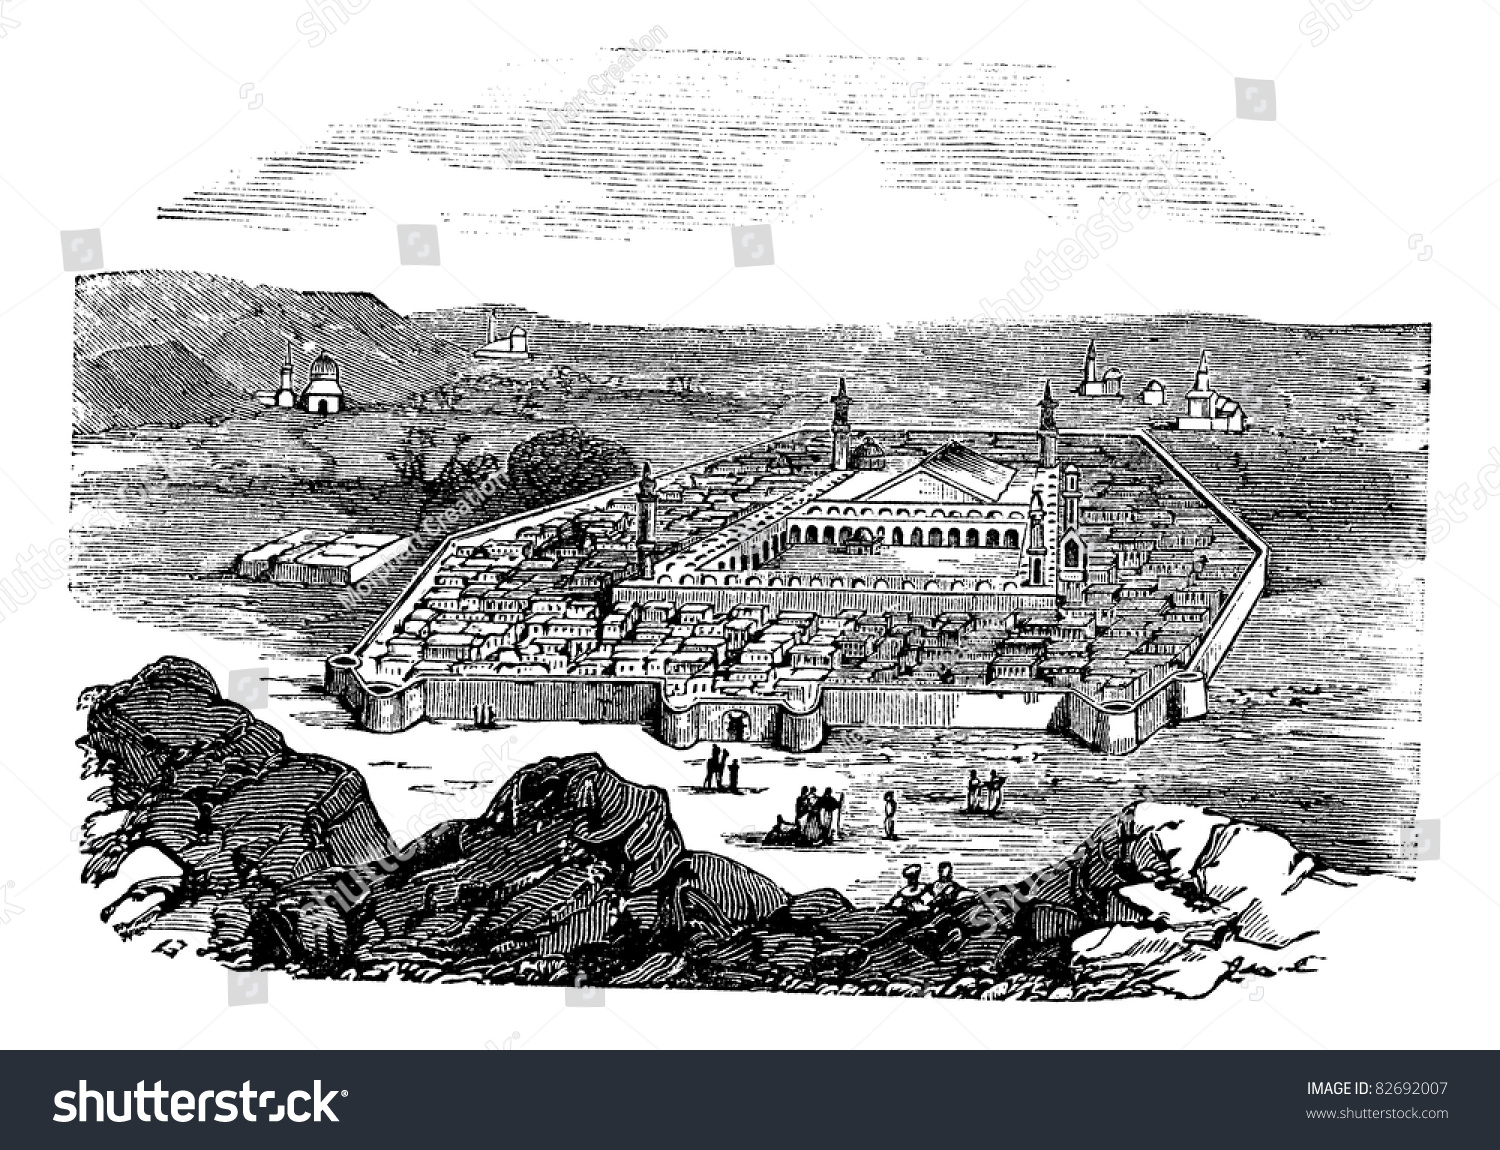 Medina Saudi Arabia Vintage Engraved Illustration Stock ...